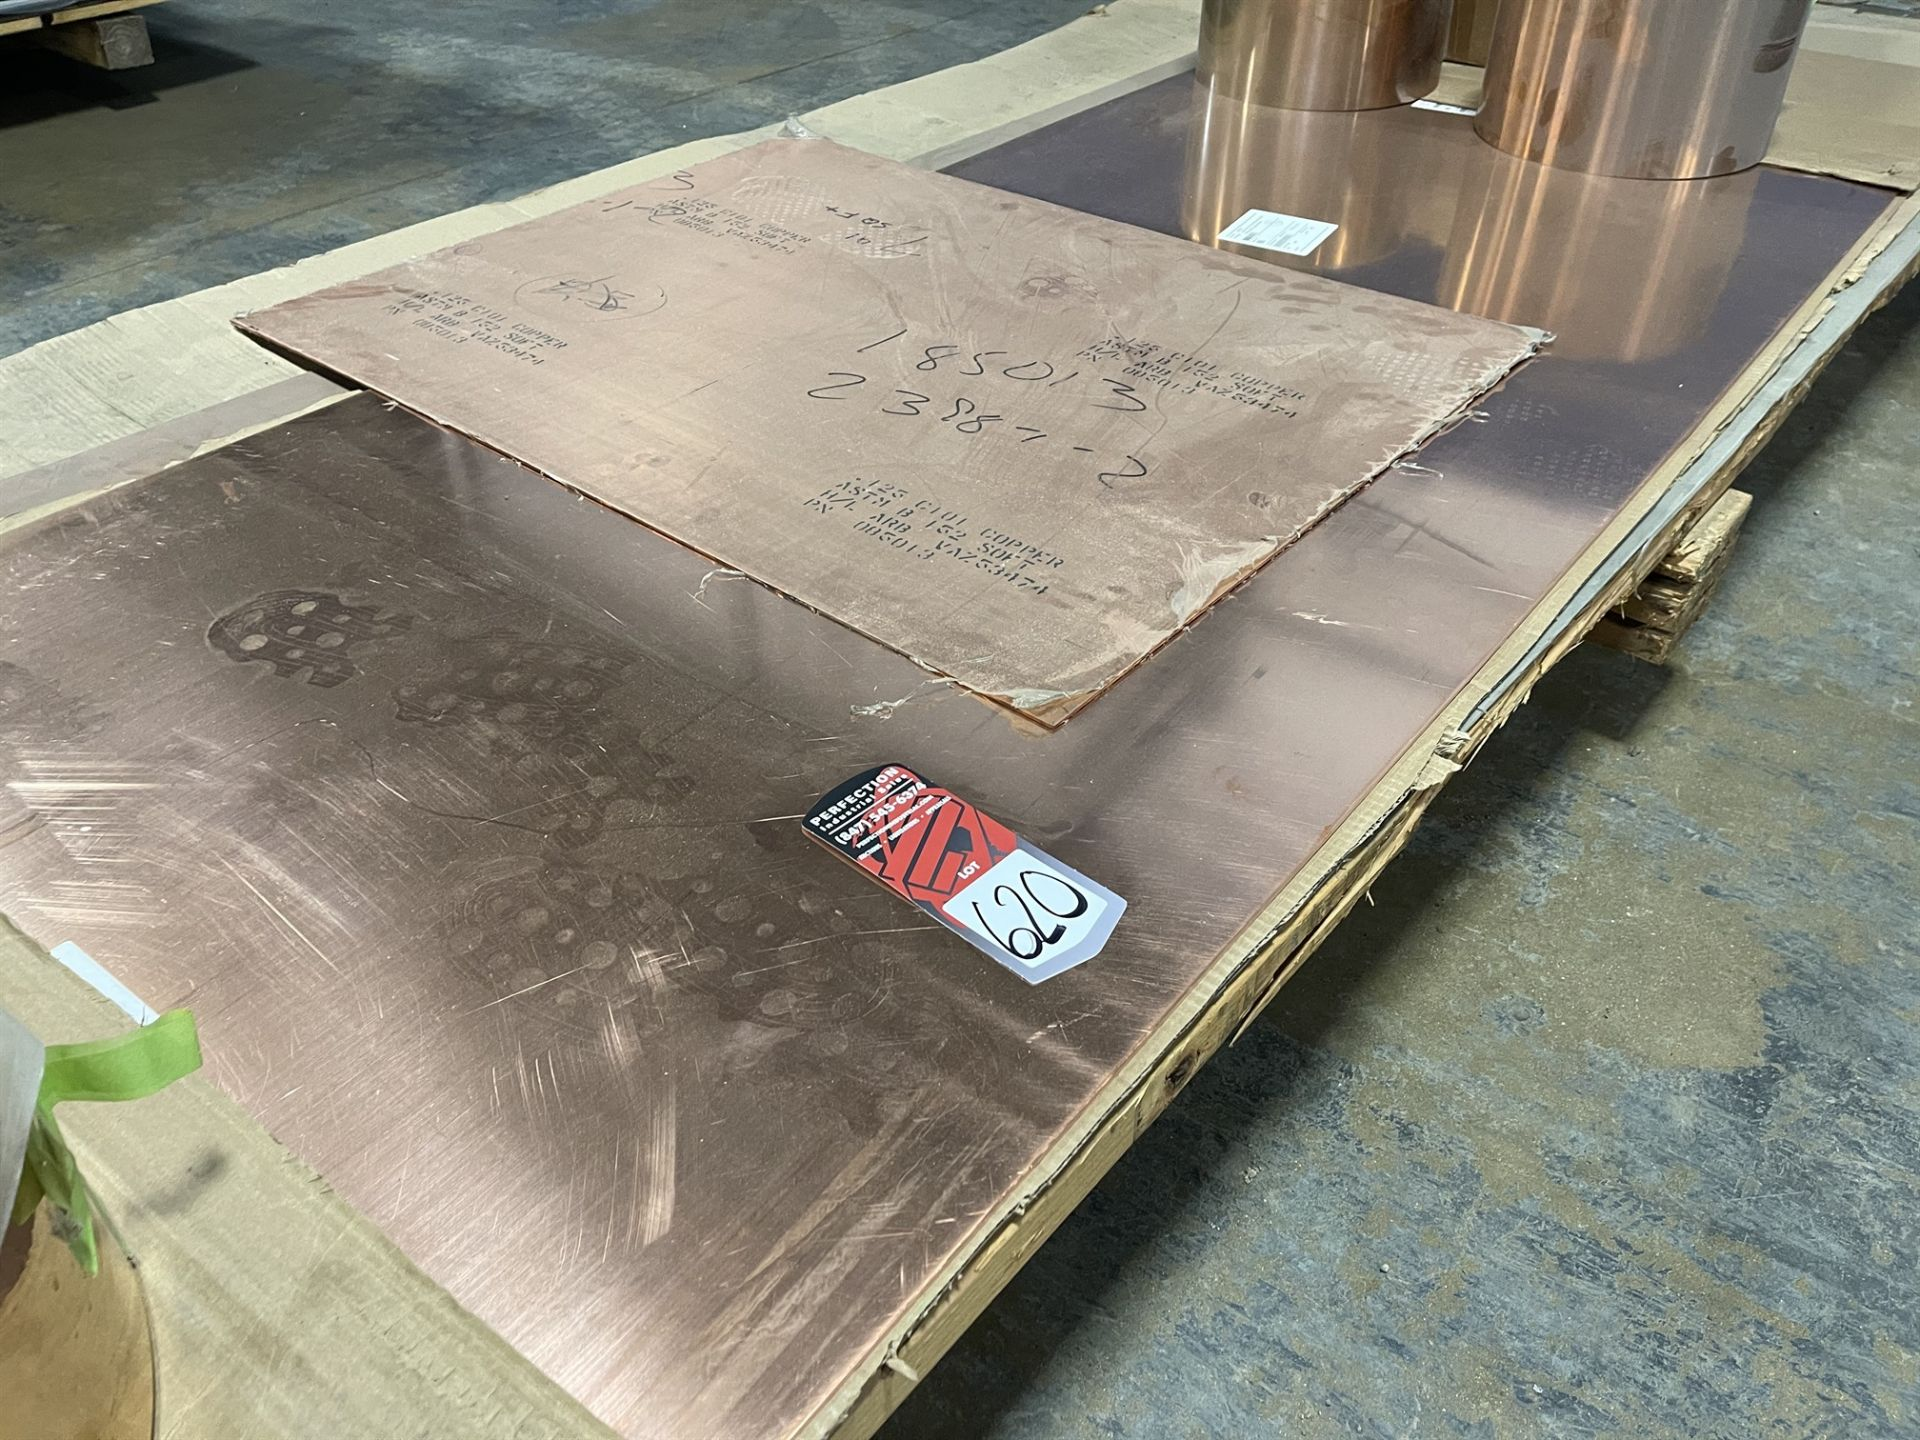 Lot Comprising Assorted Soft Copper Sheet and Copper-Beryllium Strip - Image 3 of 7